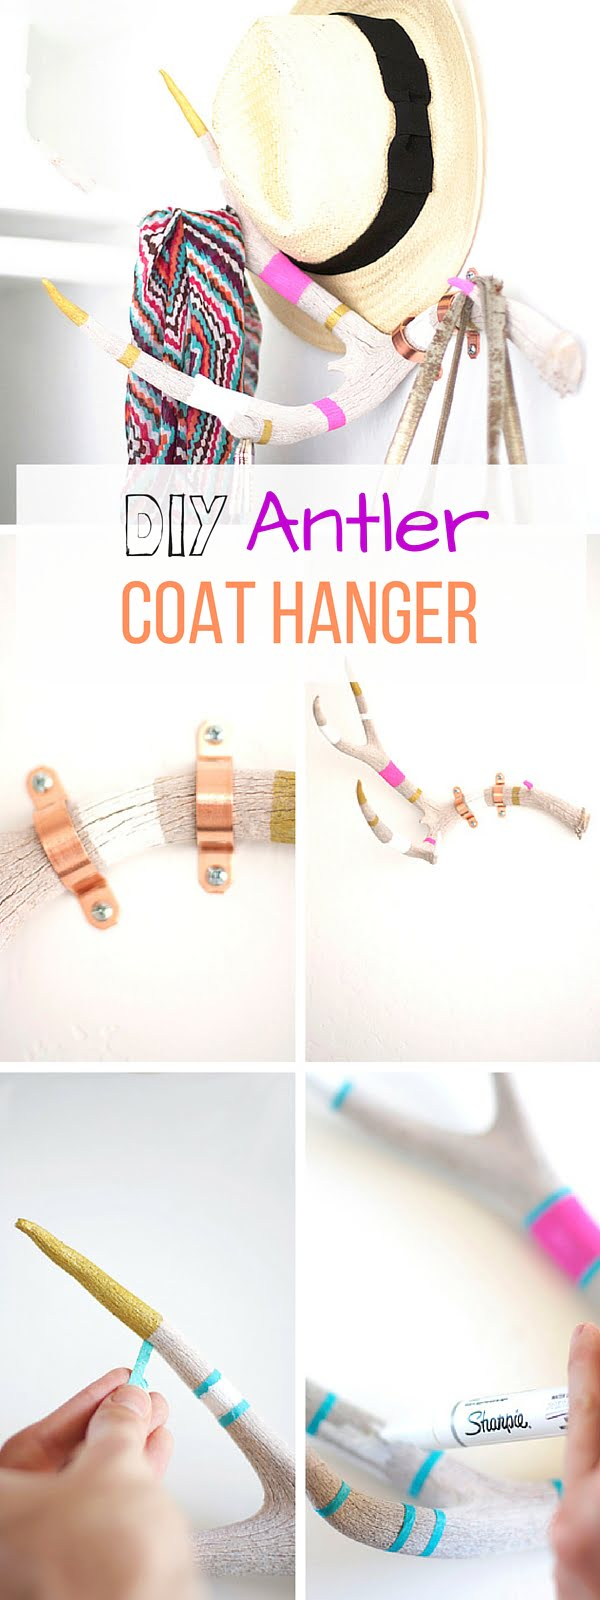 Check out the tutorial: #DIY Antler Coat Hanger #crafts #homedecor